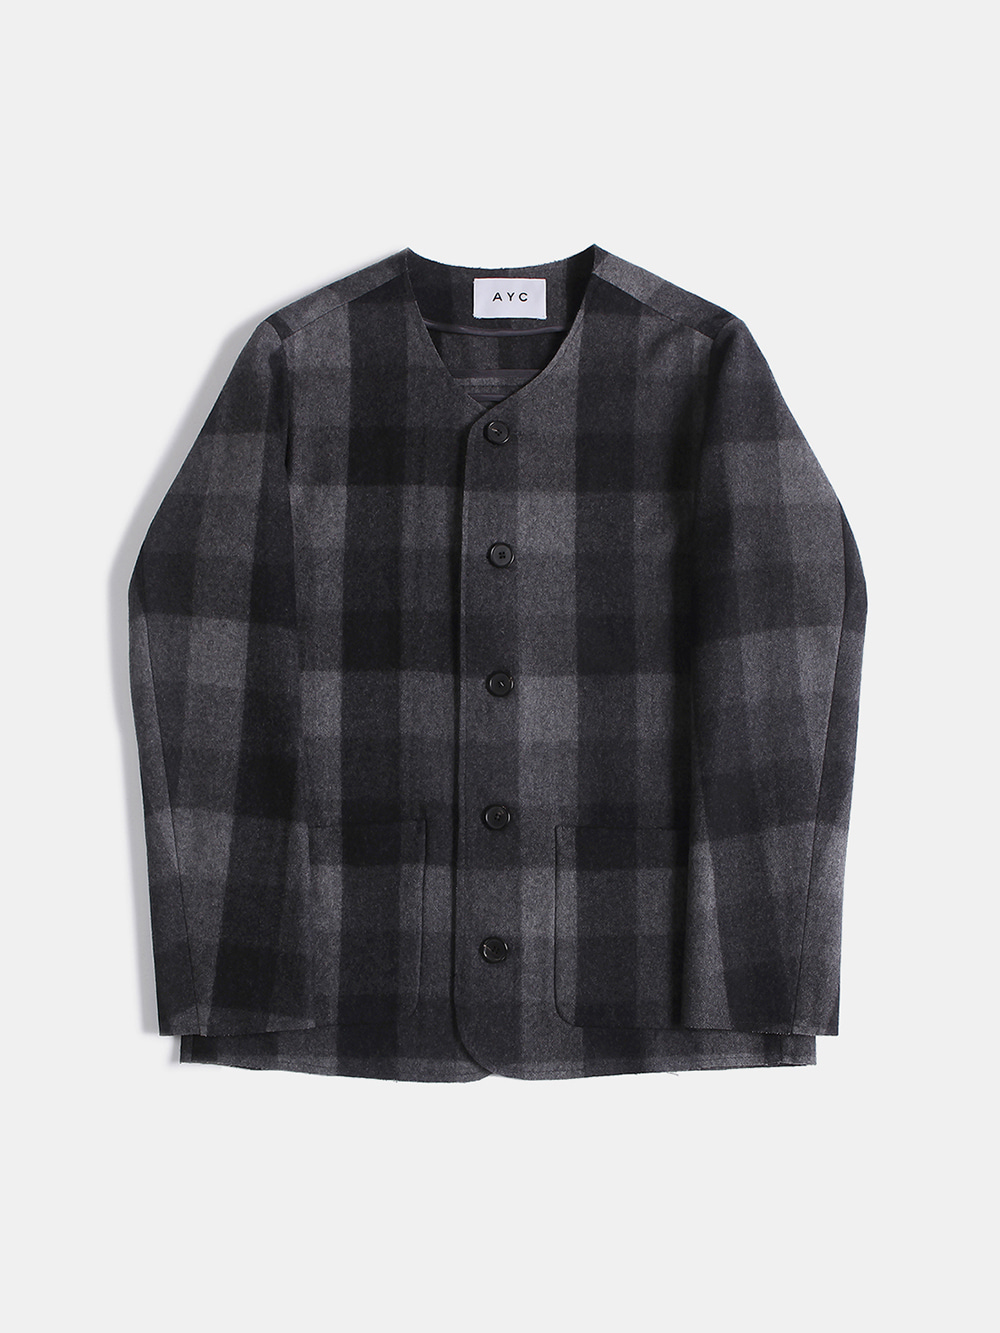 Cut-off Crew Neck Jacket (Black)